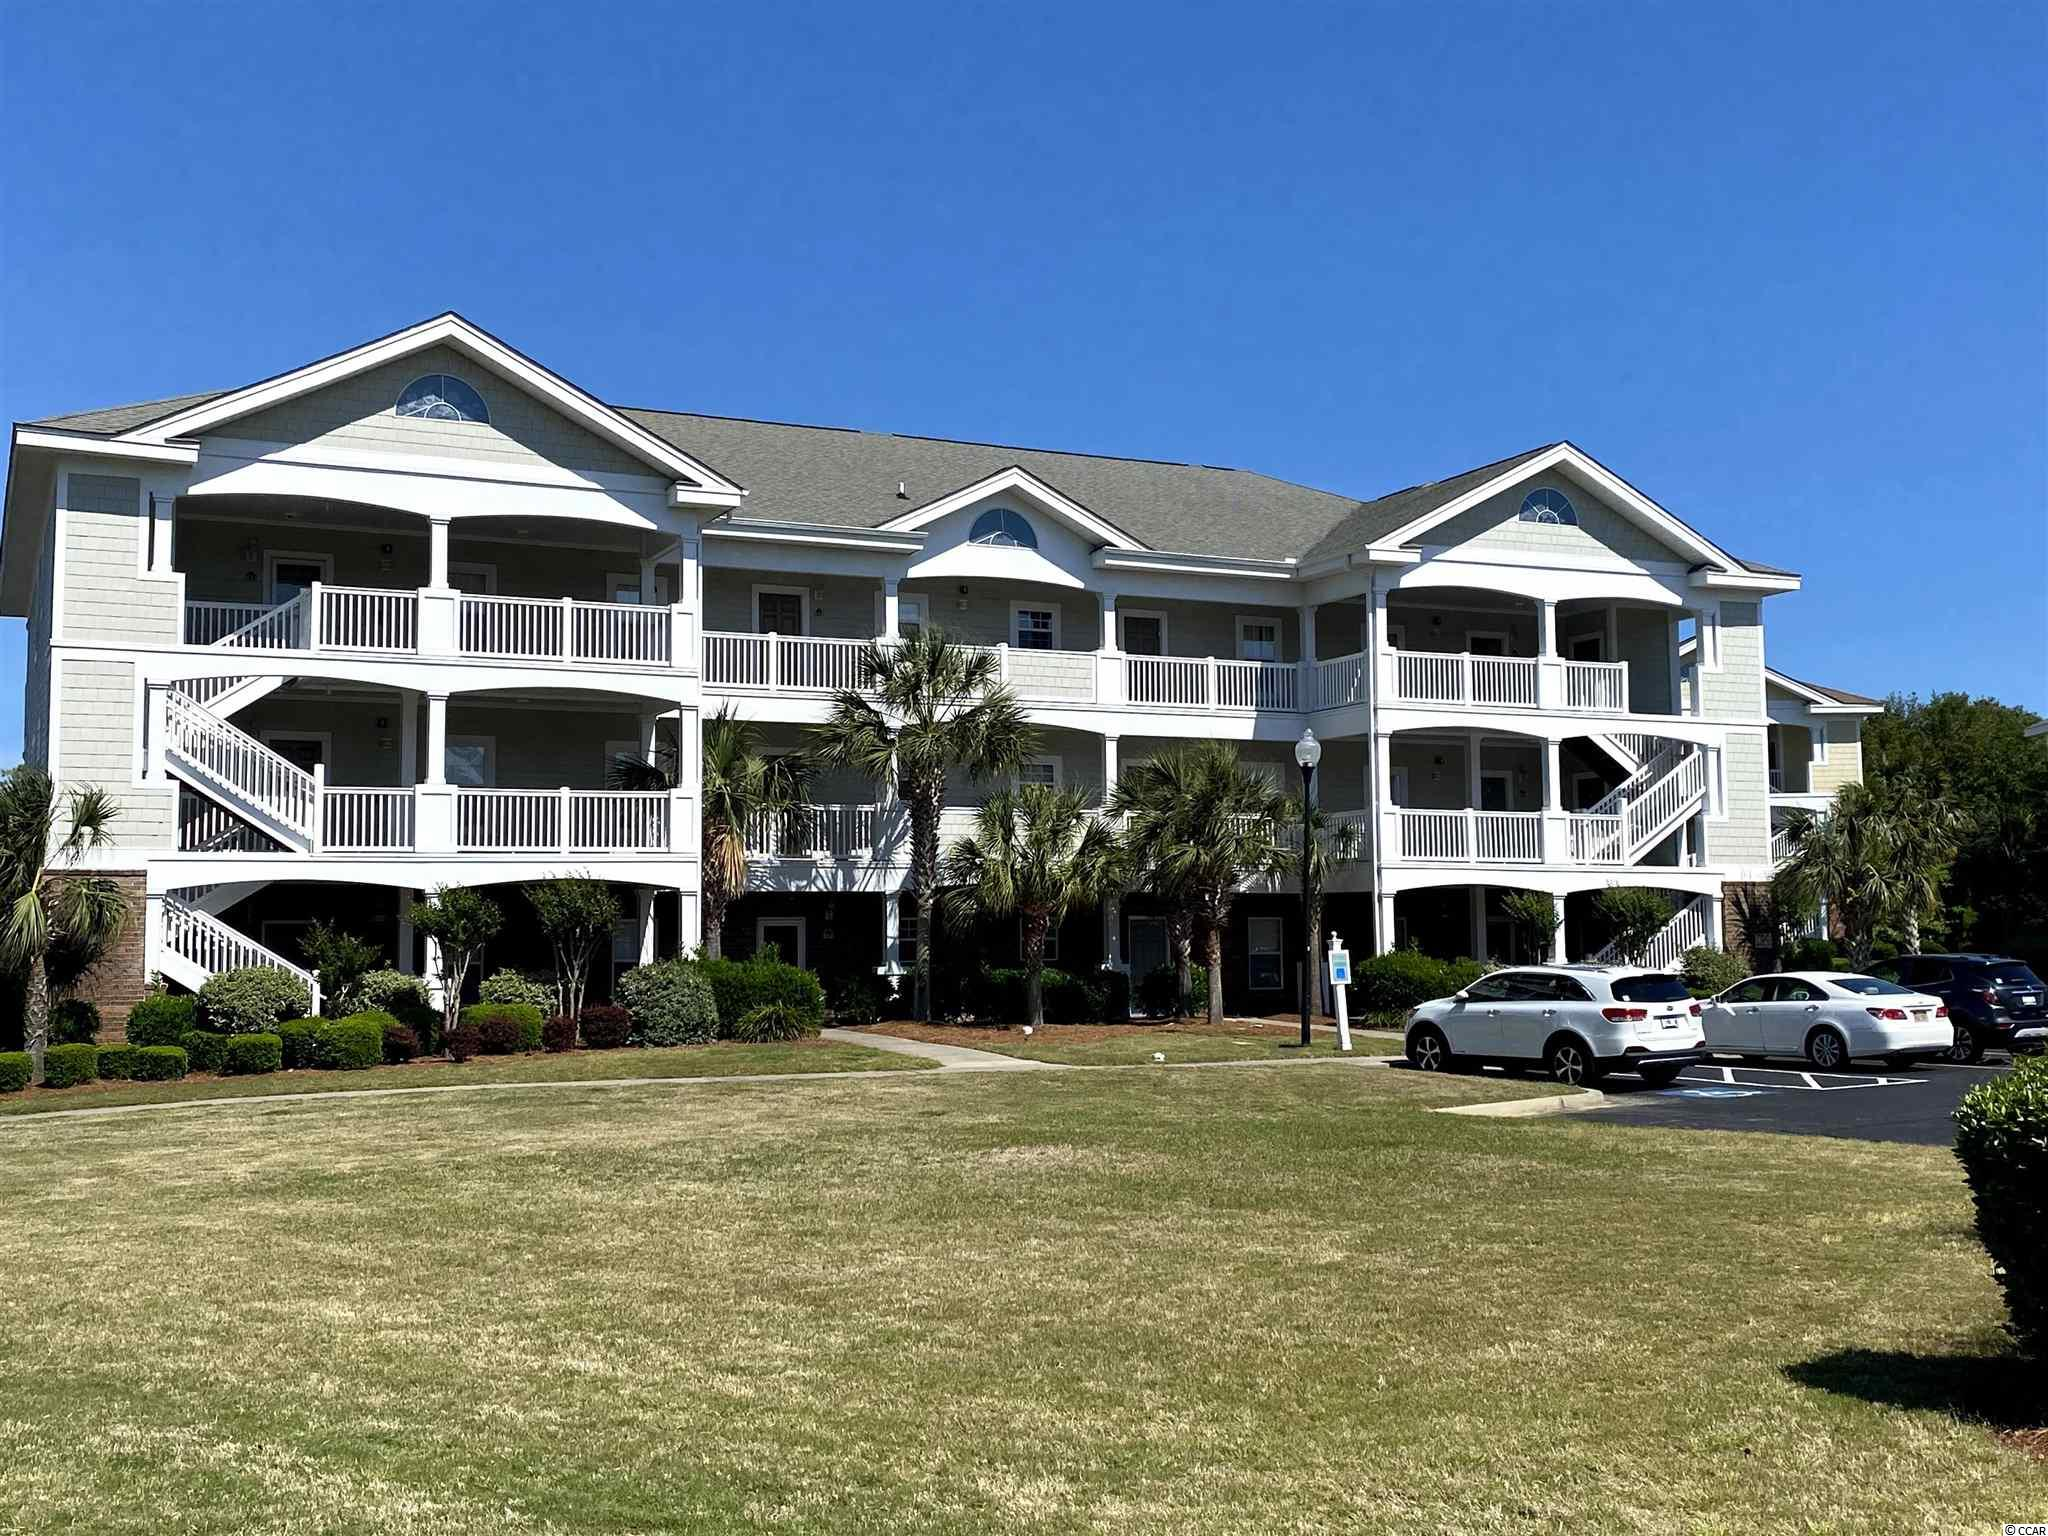 Pristine NEVER RENTED 2 bedroom/2 bath condo in the beautiful golf course community of Ironwood at Barefoot Resort. This furnished unit is move-in ready and offers a private balcony, full kitchen, spacious dining/living area, washer/dryer, large bedrooms, and the master bedroom features an en suite bathroom and two closets. Coming from a local, this location is THE BEST on the Grand Strand! You are just steps away from seeing a live performance at the Alabama Theater or the House of Blues, playing with animals at the Alligator Adventure, having a romantic wine-tasting at Duplin Winery, buying souvenirs for the family at the shops, or enjoying an amazing meal ALL WITHIN BAREFOOT LANDING! Walmart, Tanger Outlets, Restaurant Row, gas stations, and Myrtle Beach Mall are all within minutes of this community. Put this condo at the top of your list and take a look for yourself today!